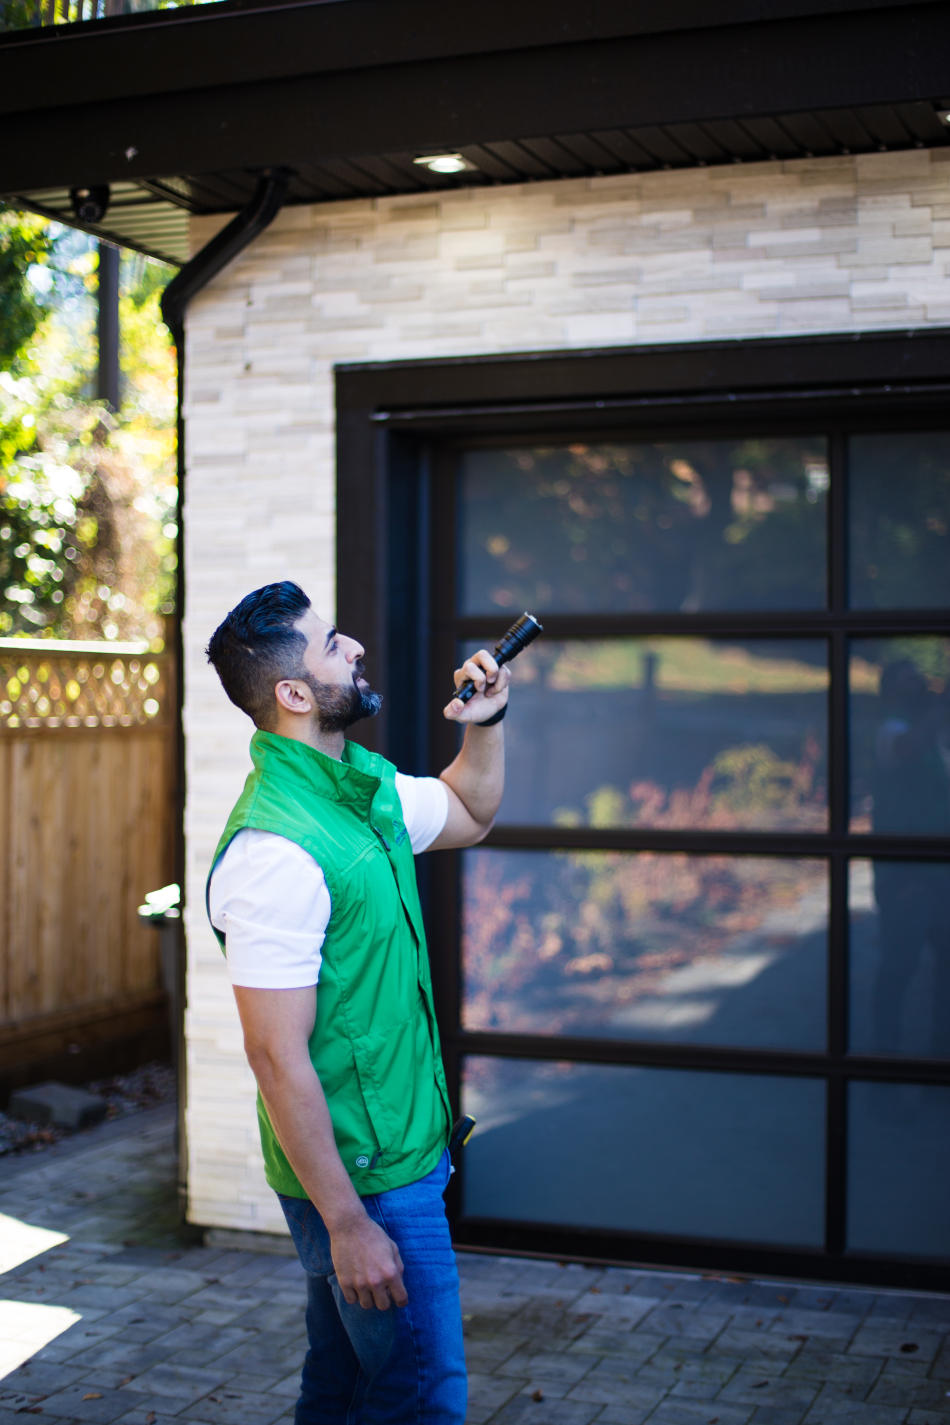 Home inspector checking the exterior of a house